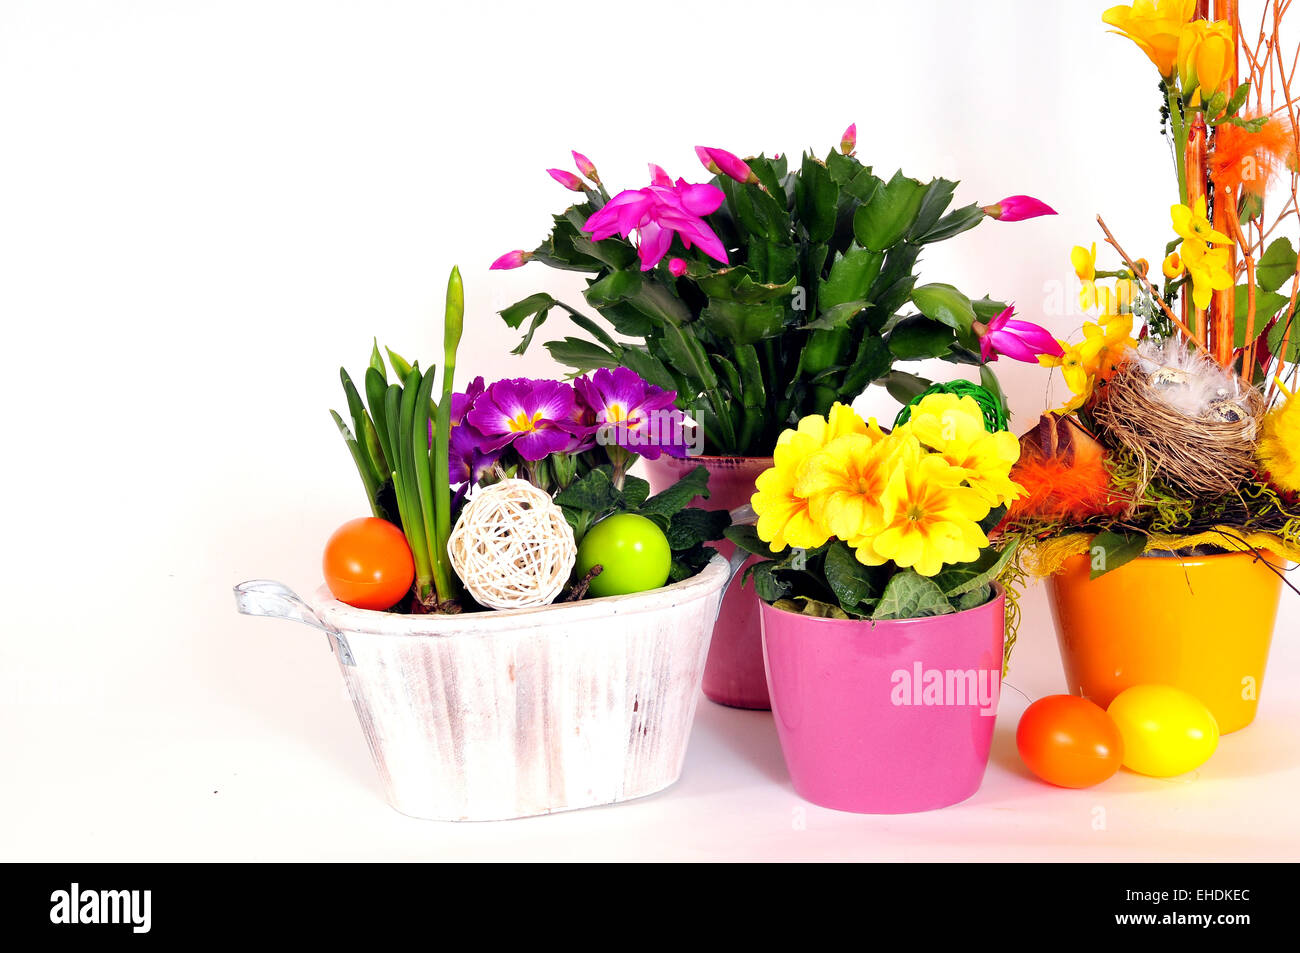 Spring Primrose Easter Flower Stock Photo 79591300 Alamy